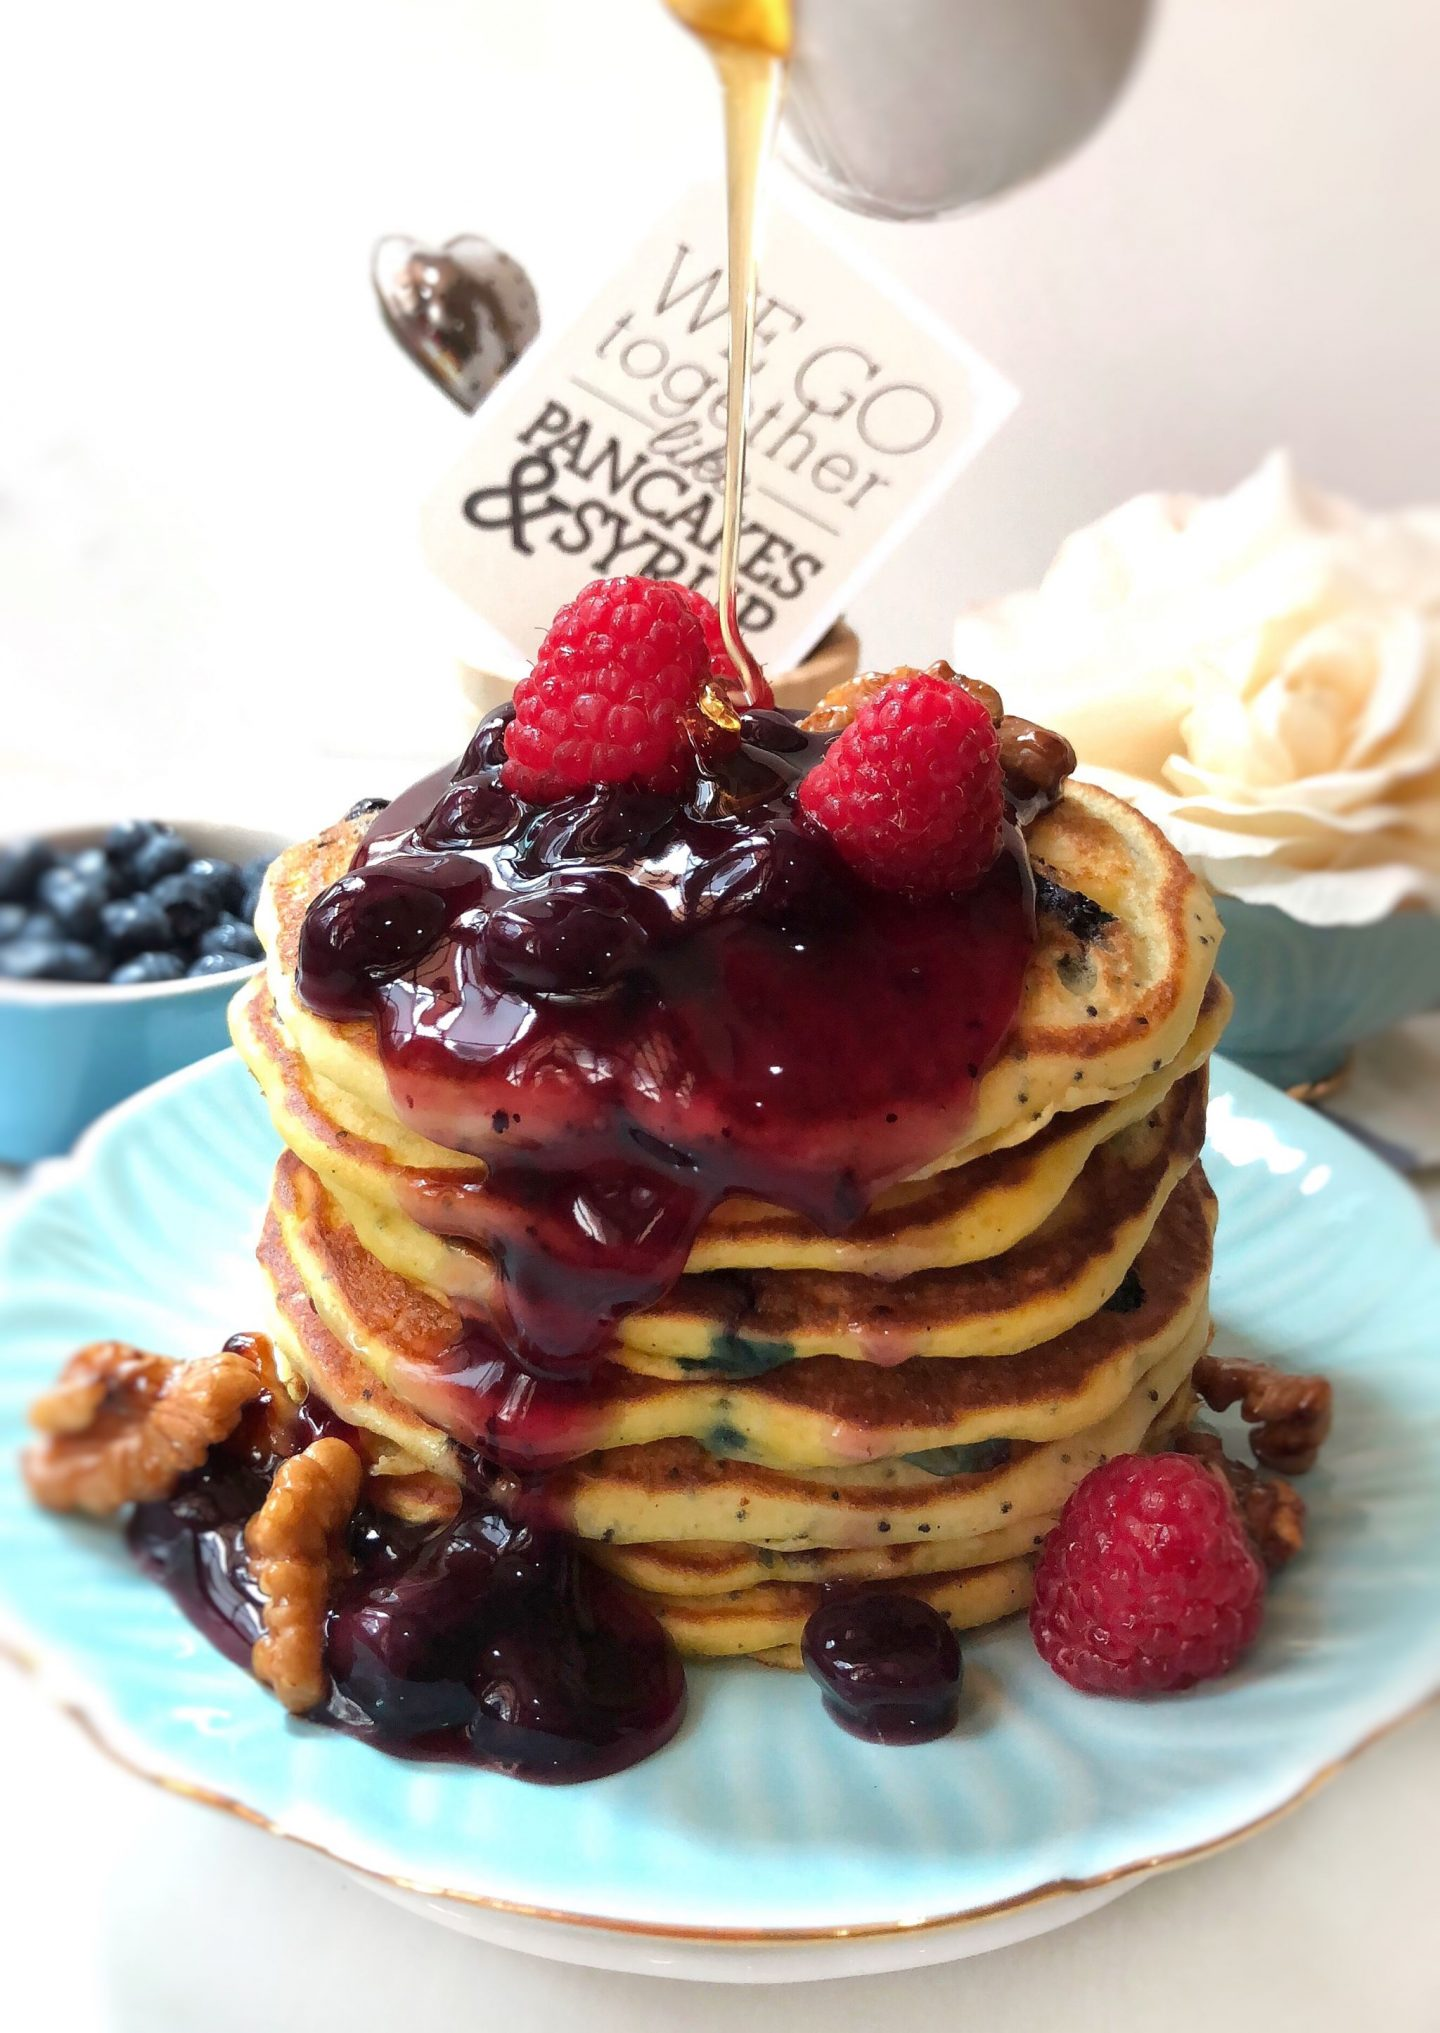 Blueberry Poppyseed Pancakes with Blueberry Sauce